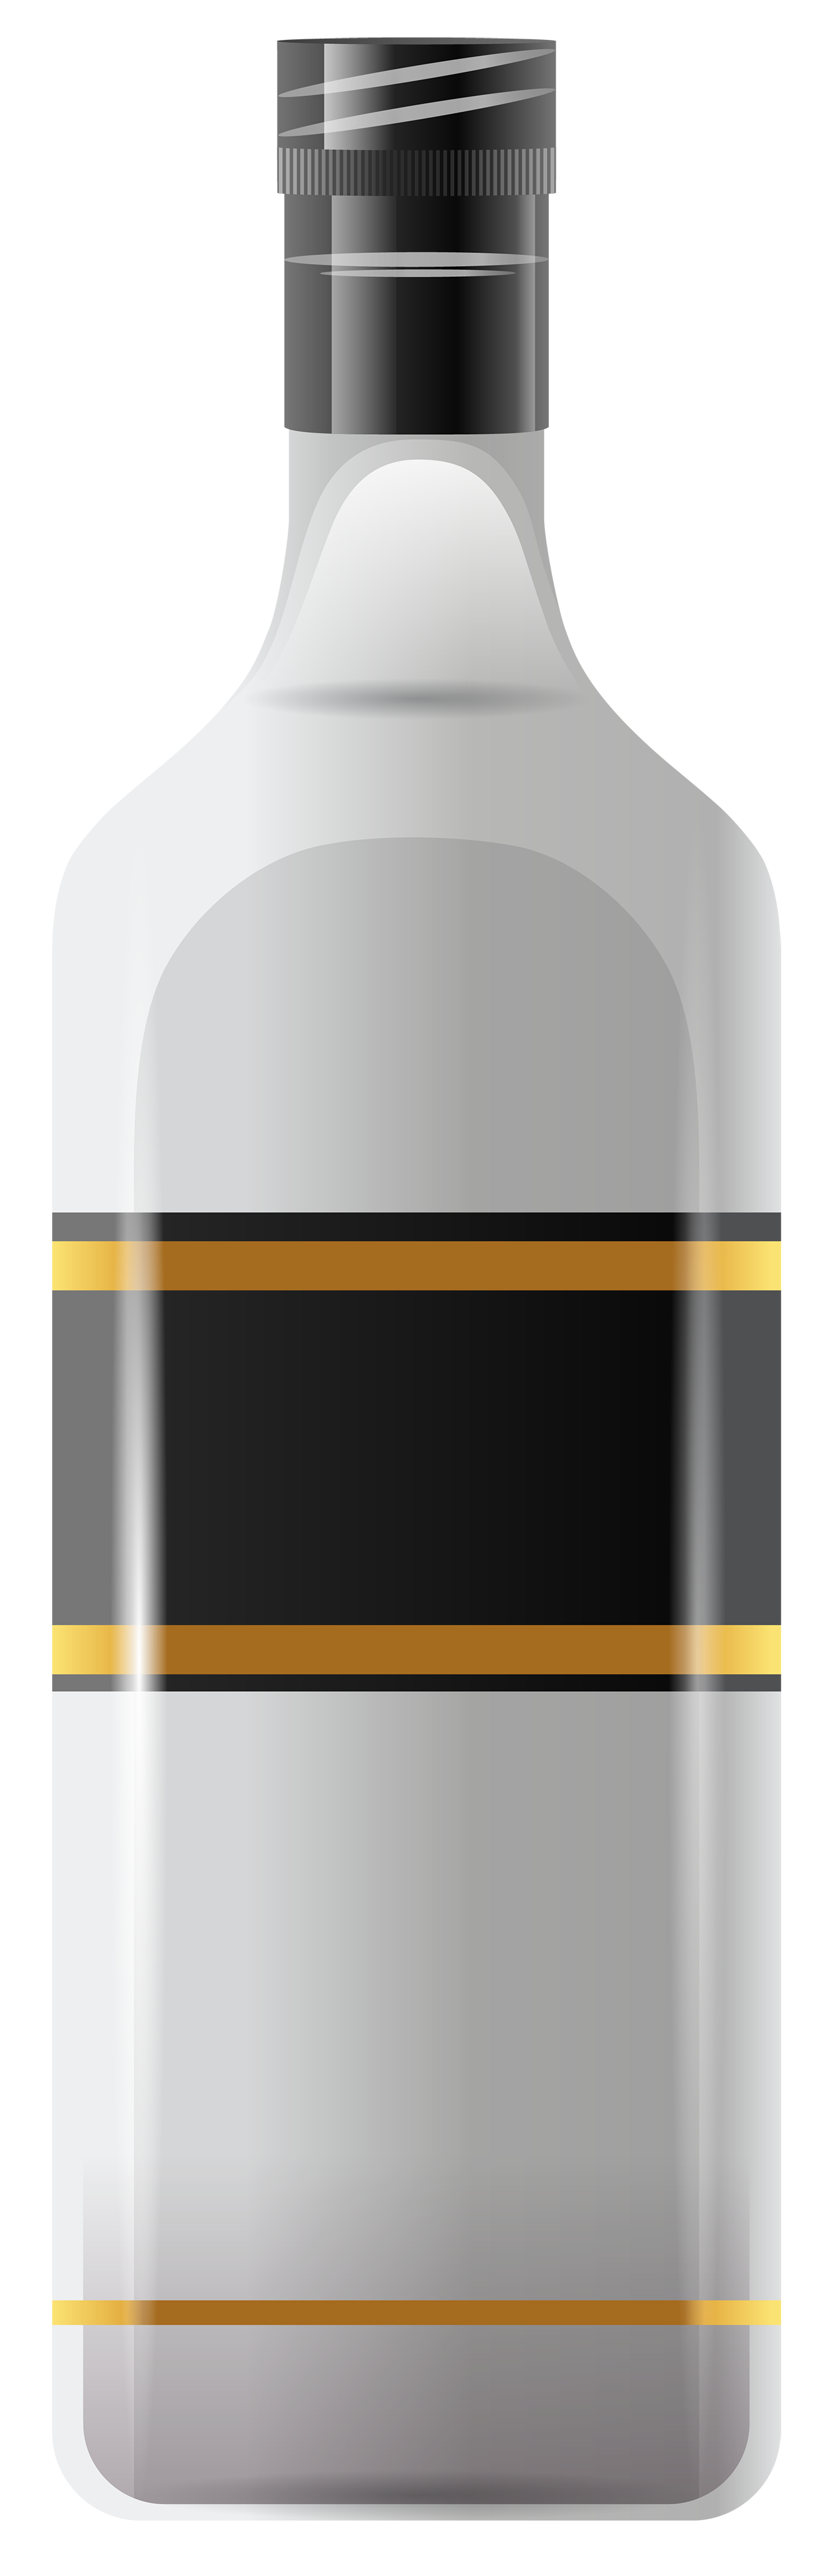 Whiskey bottle png. Green clipart best web